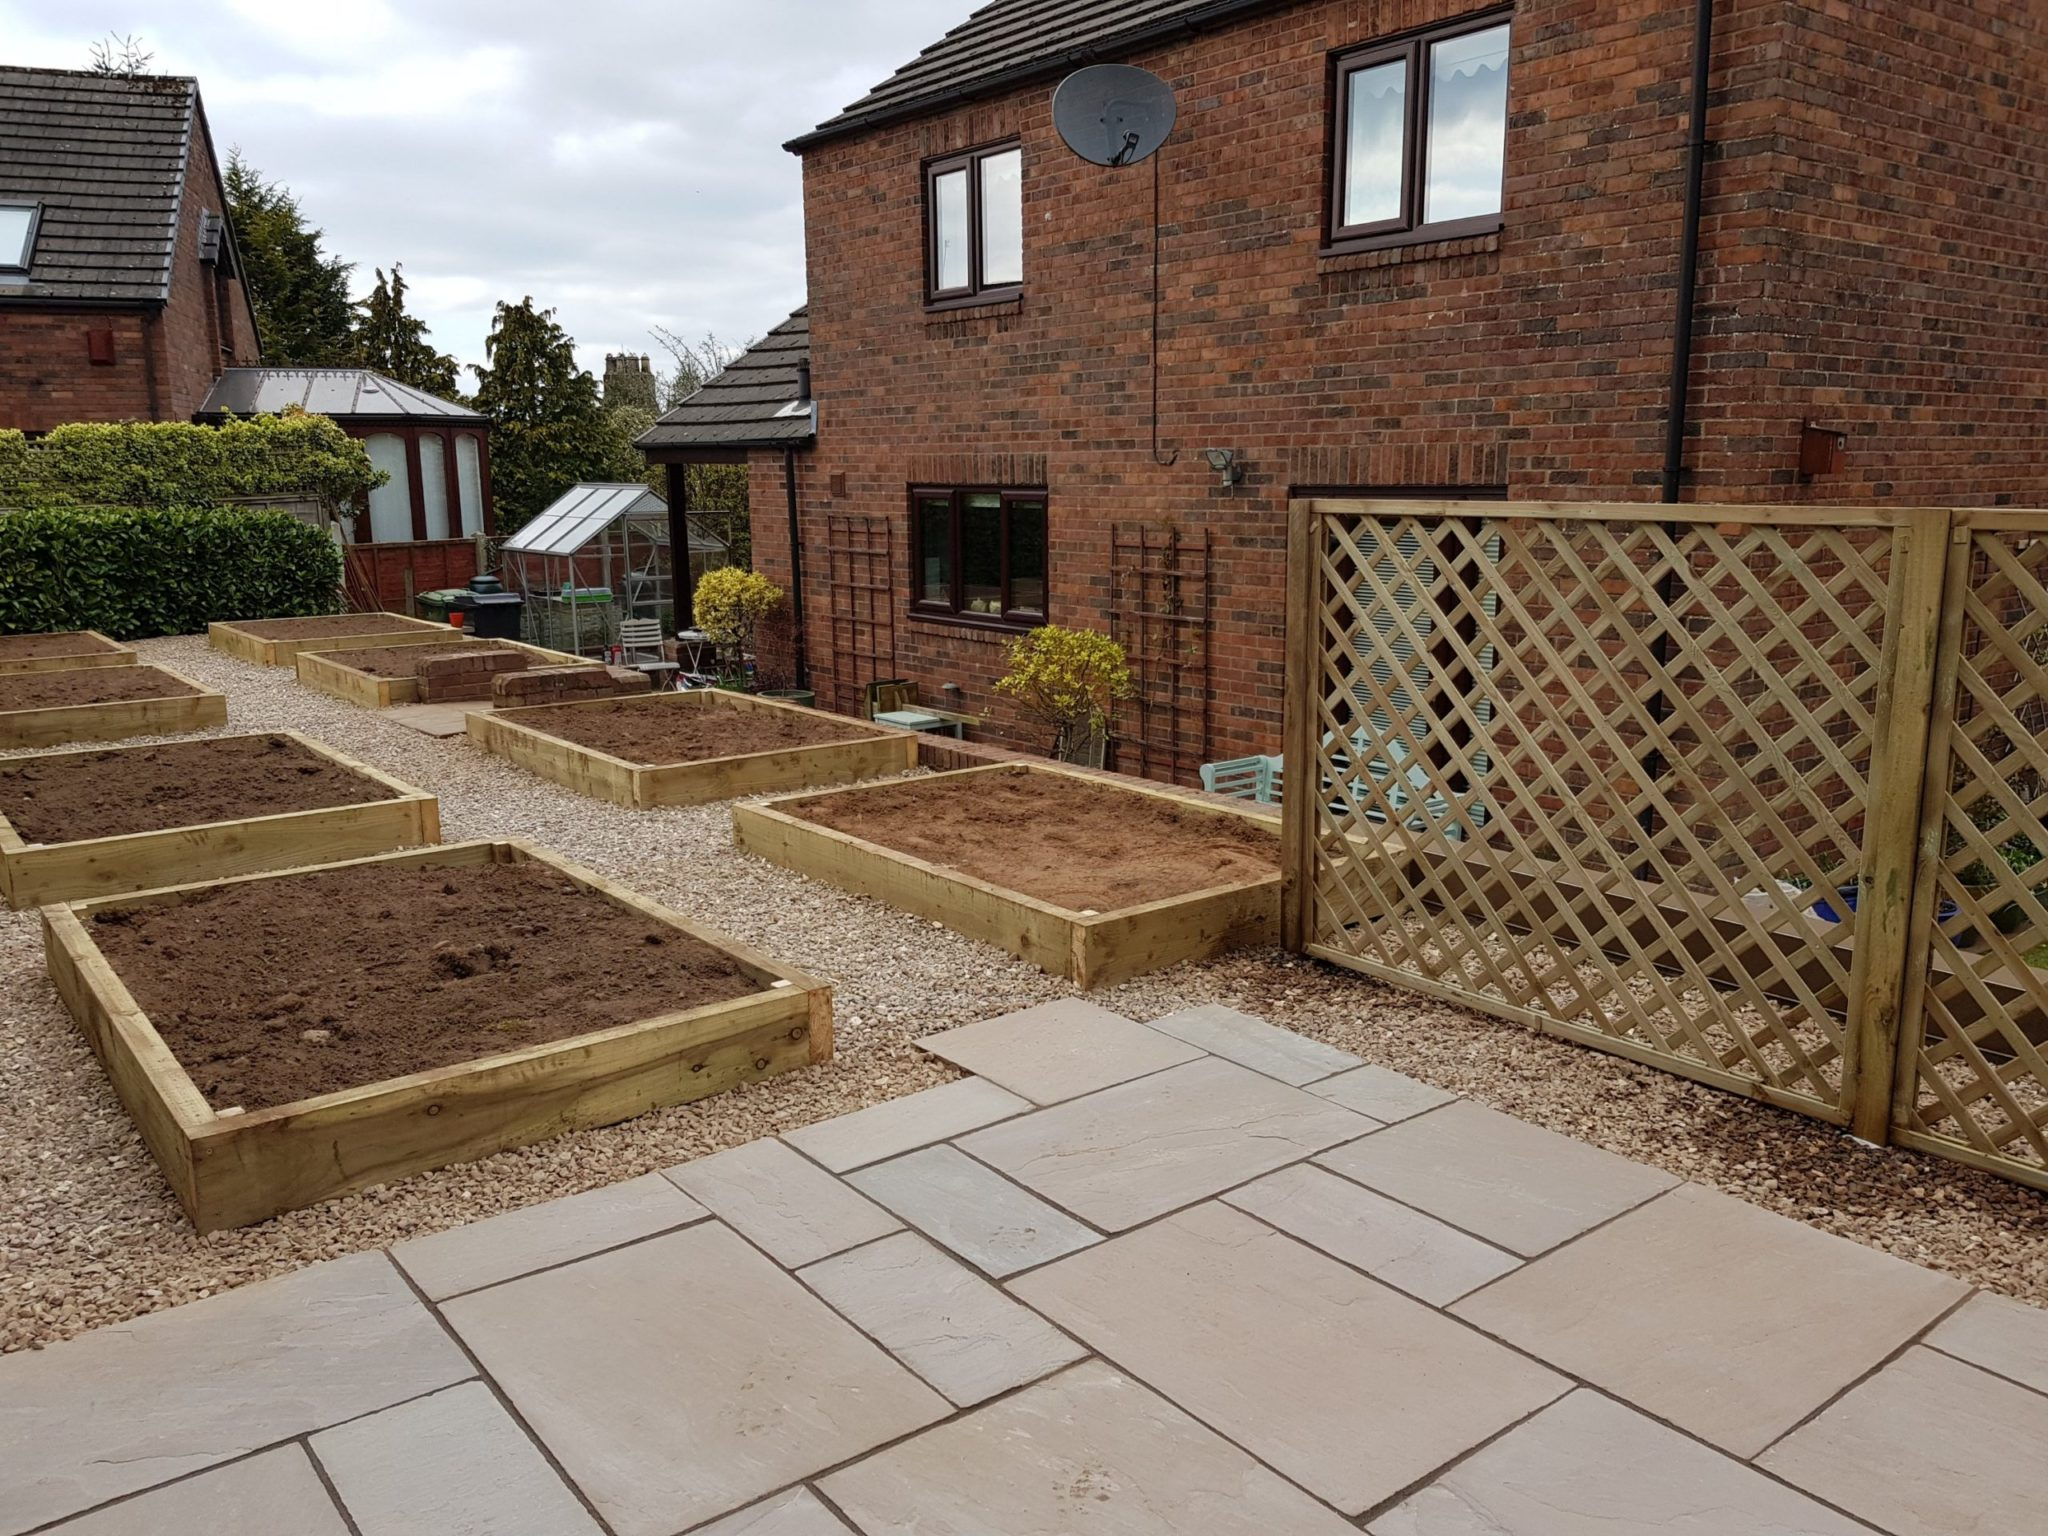 stone patio and wooden planters we landscaped in Brampton Cumbria